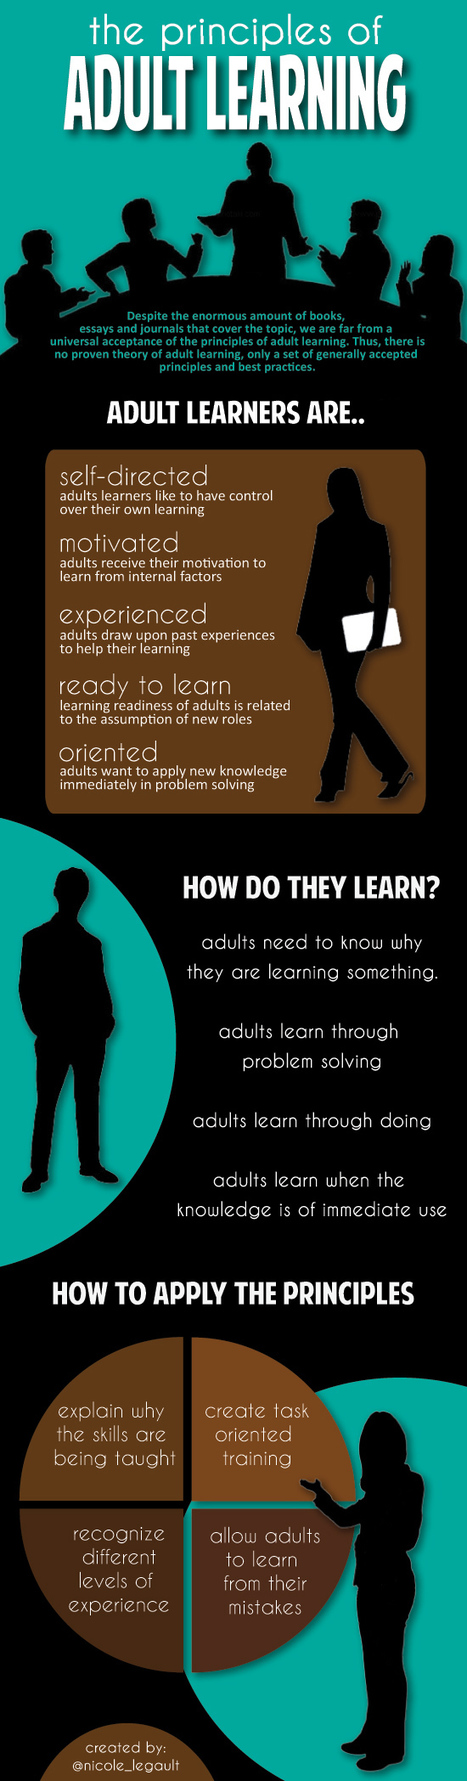 Characteristics of Adult Learners | E-Learning and Online Teaching | Scoop.it